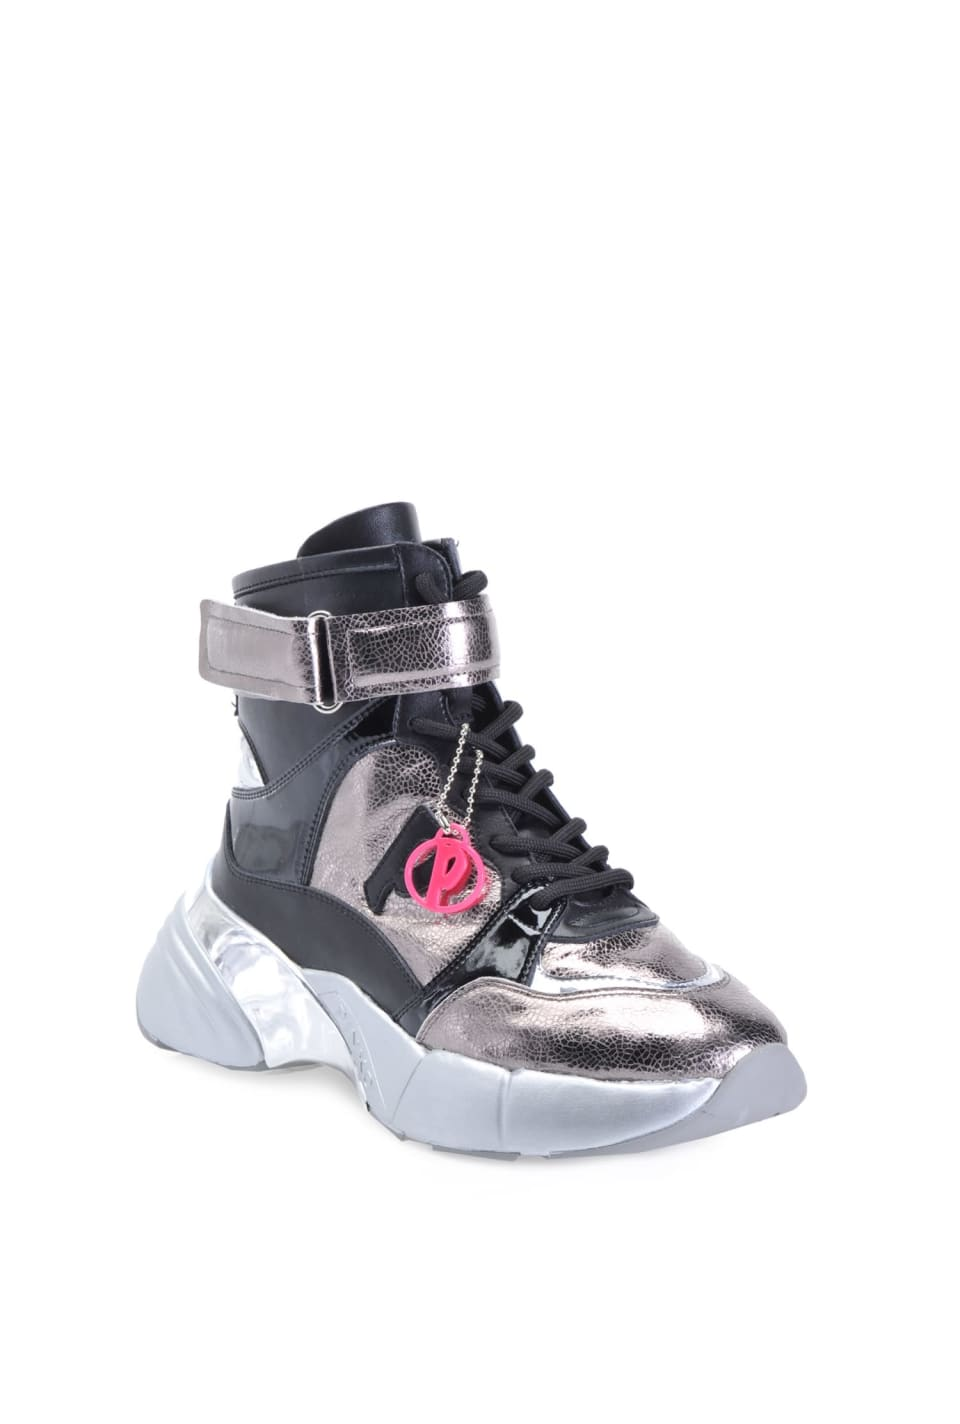 Shoes To Rock high top sneakers in crackle effect and patent leather